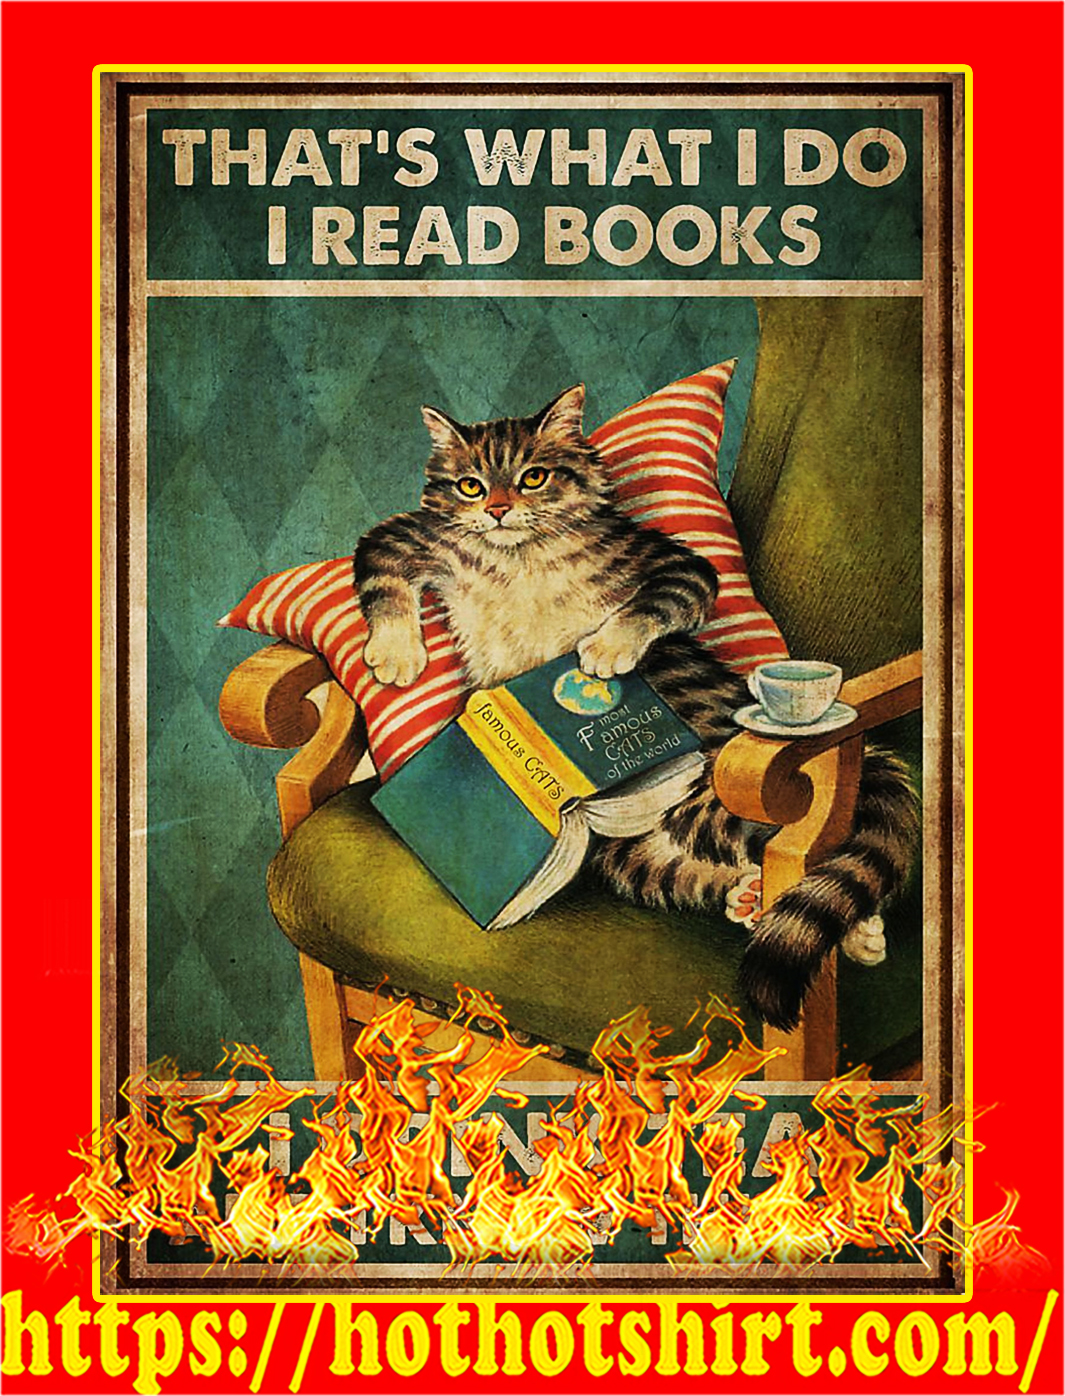 Cat That's what i do i read books i drink tea poster - A2